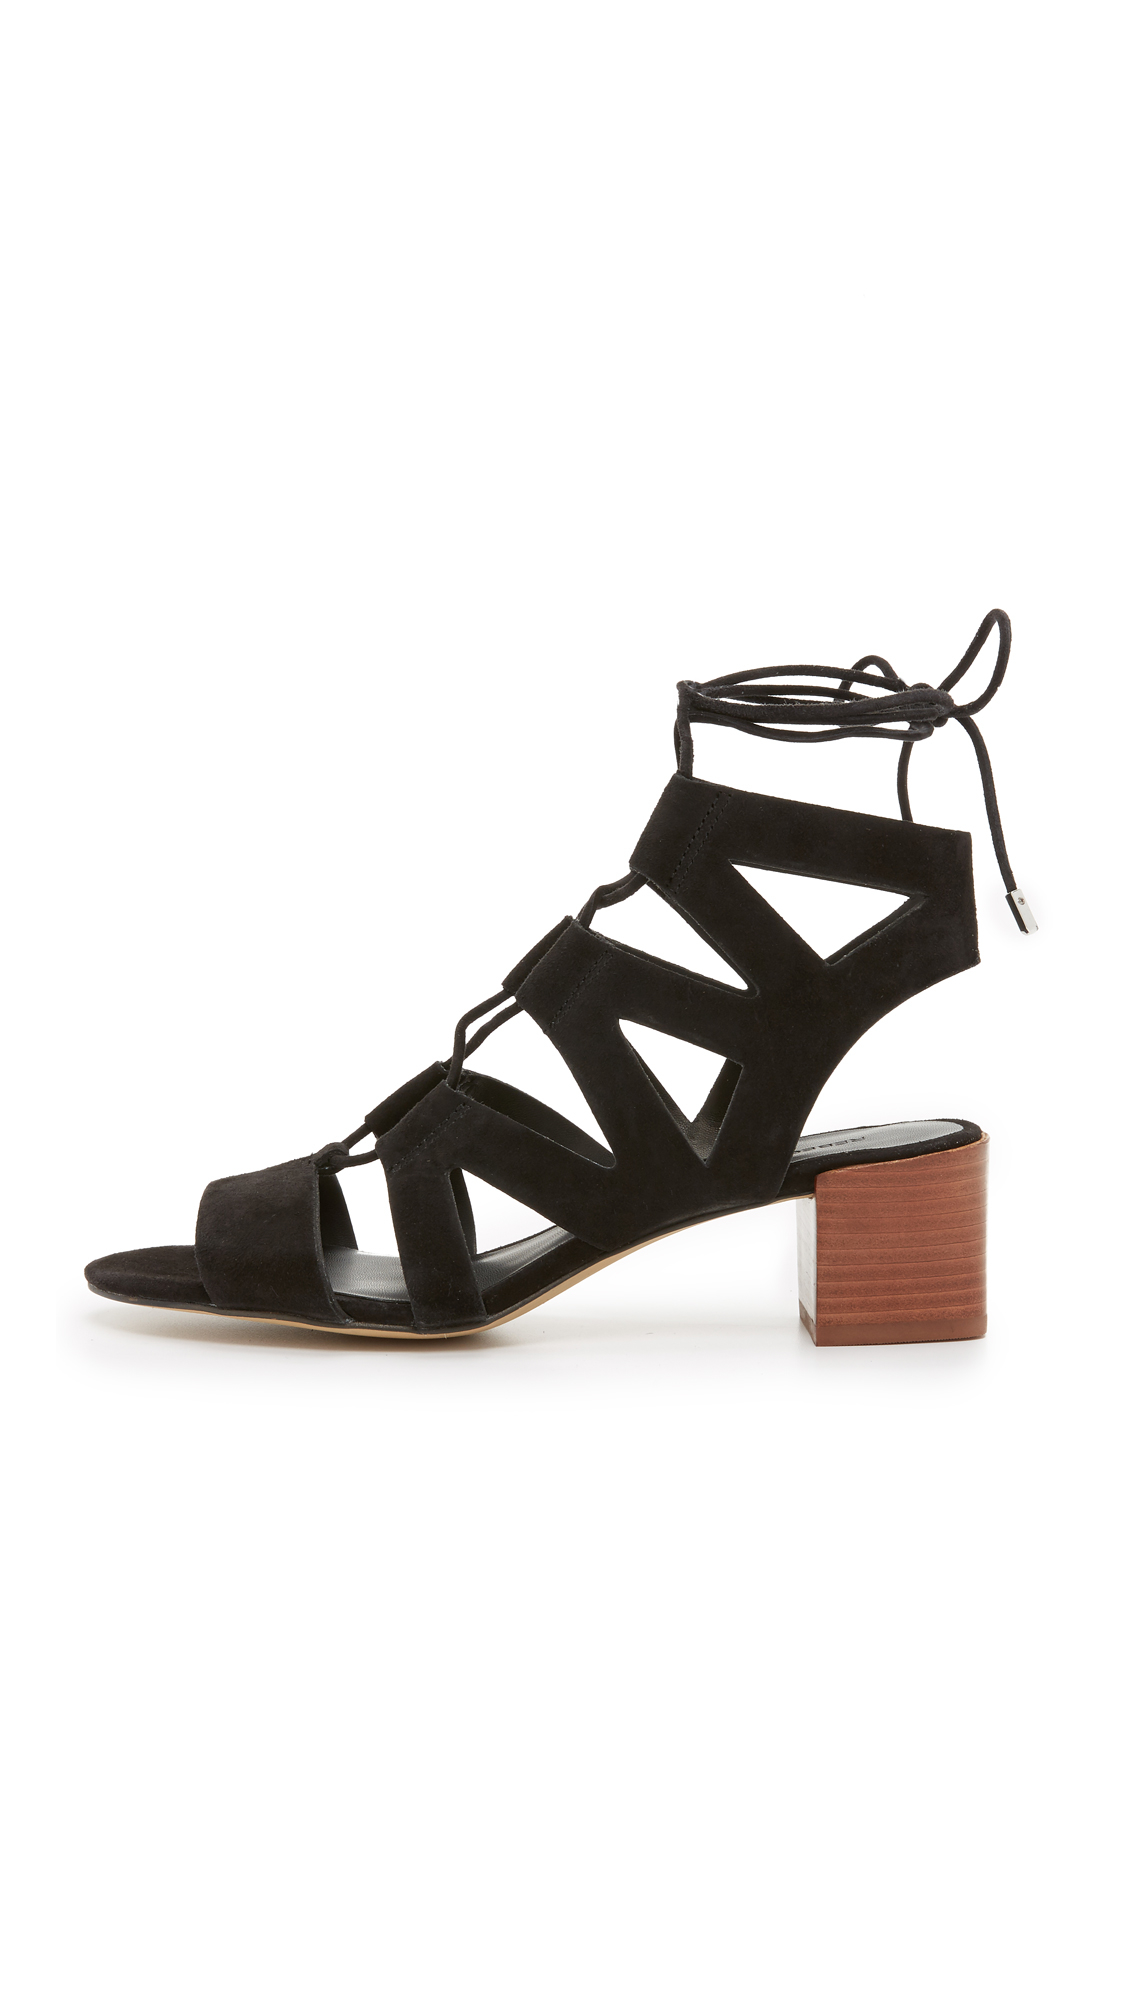 f1412f1c06bb Gallery. Previously sold at  Shopbop · Women s Gladiator Sandals ...